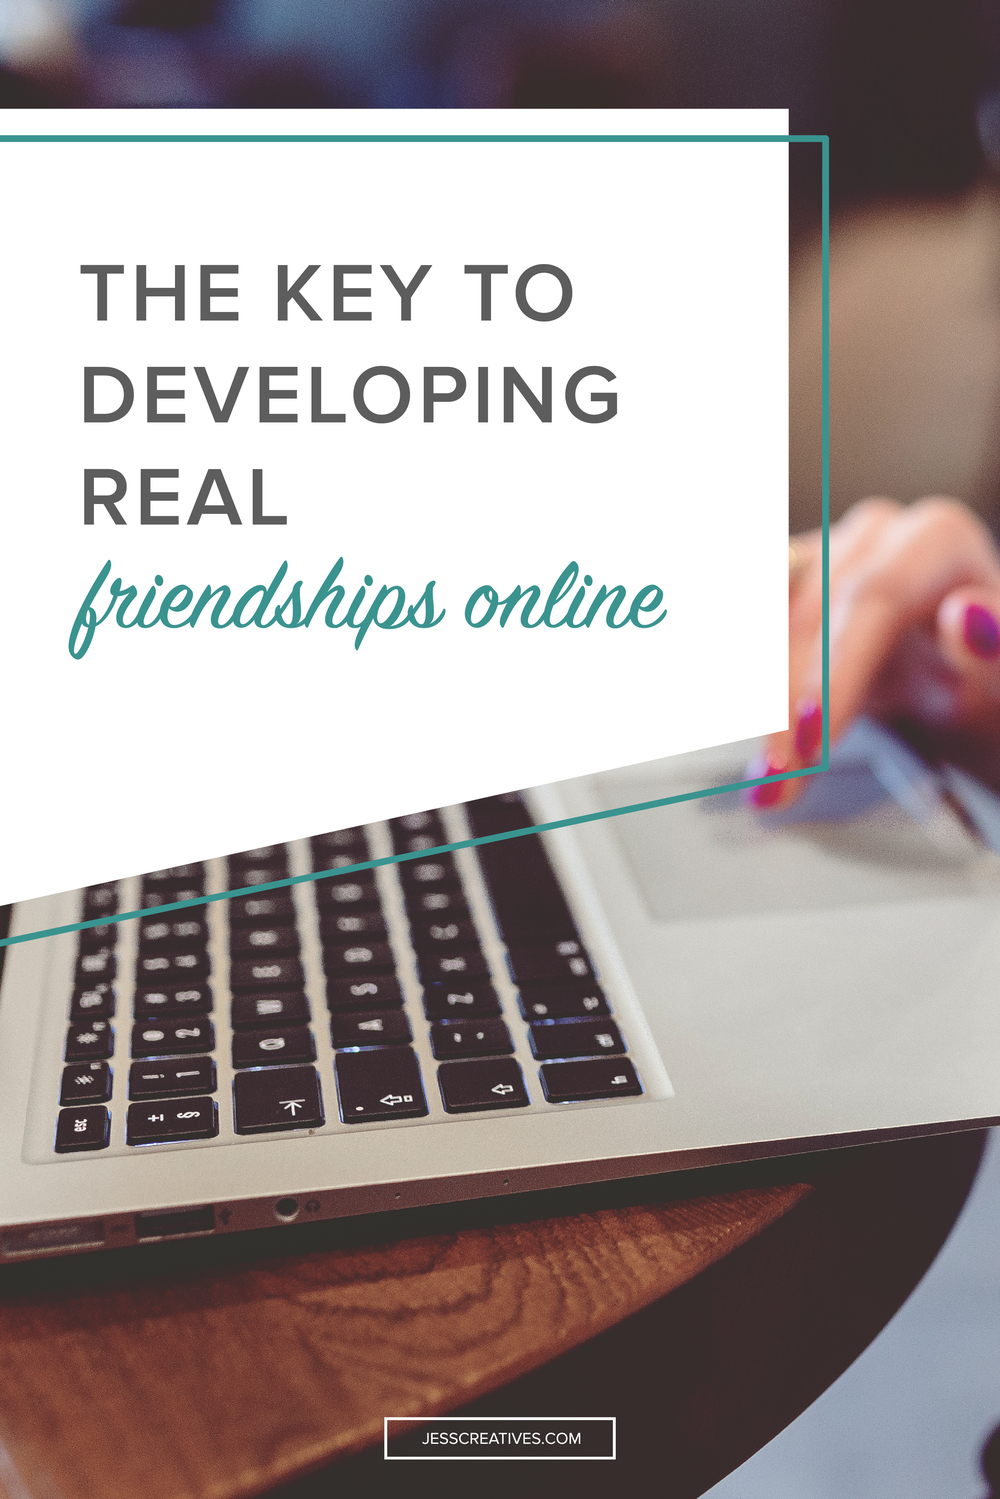 Social media doesn't have to make us totally un-social. In fact, many of the people I call my closest friends are people I met online. See how you can connect with others to develop real friendships with people online.